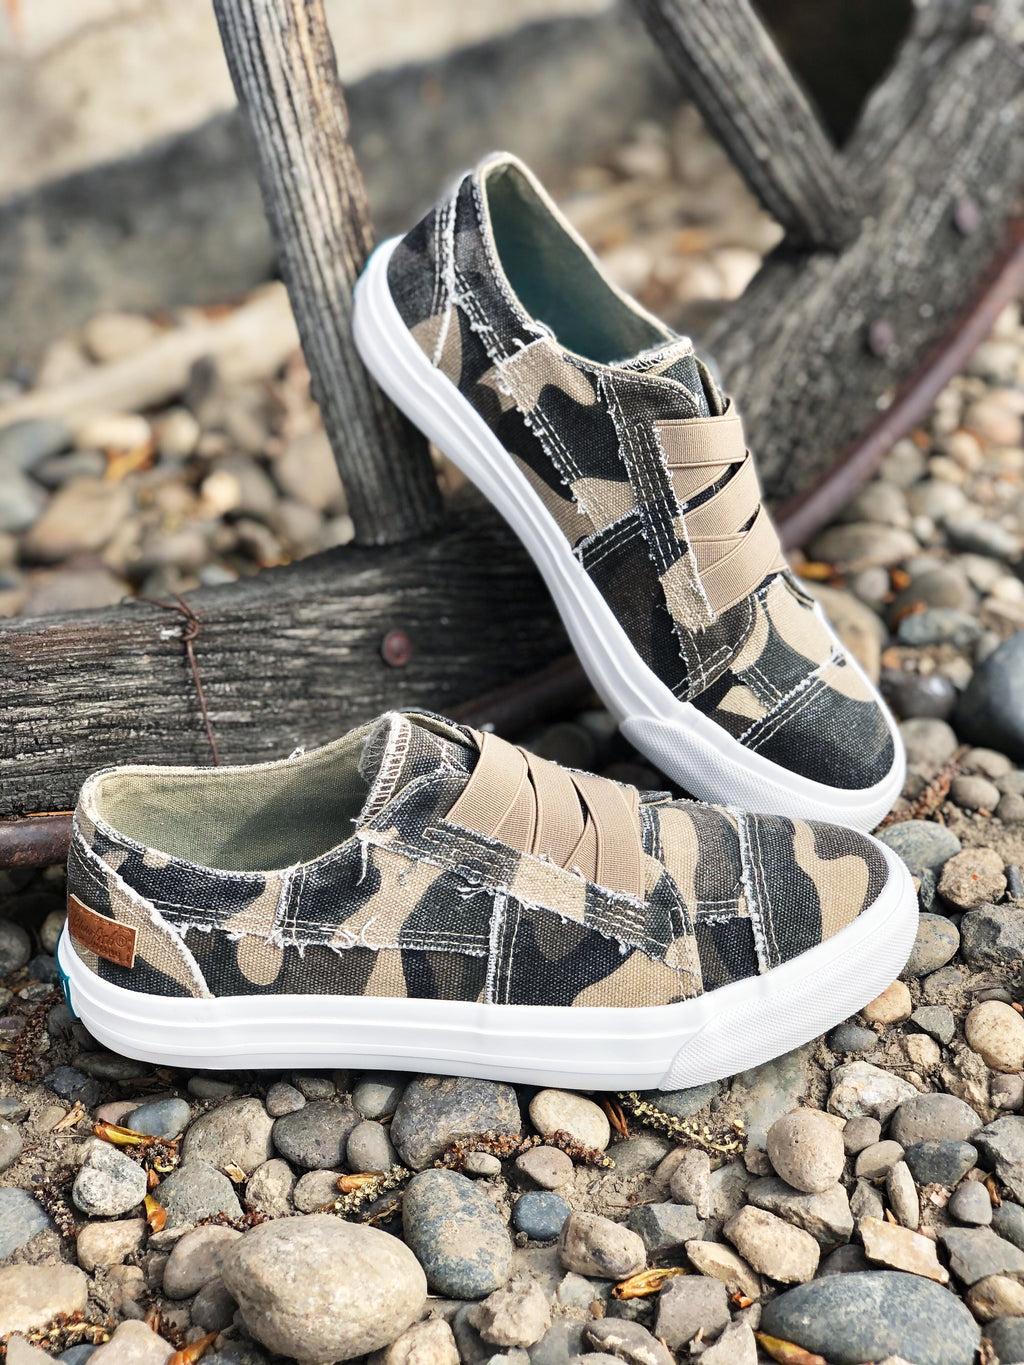 The Camouflage Sneaker